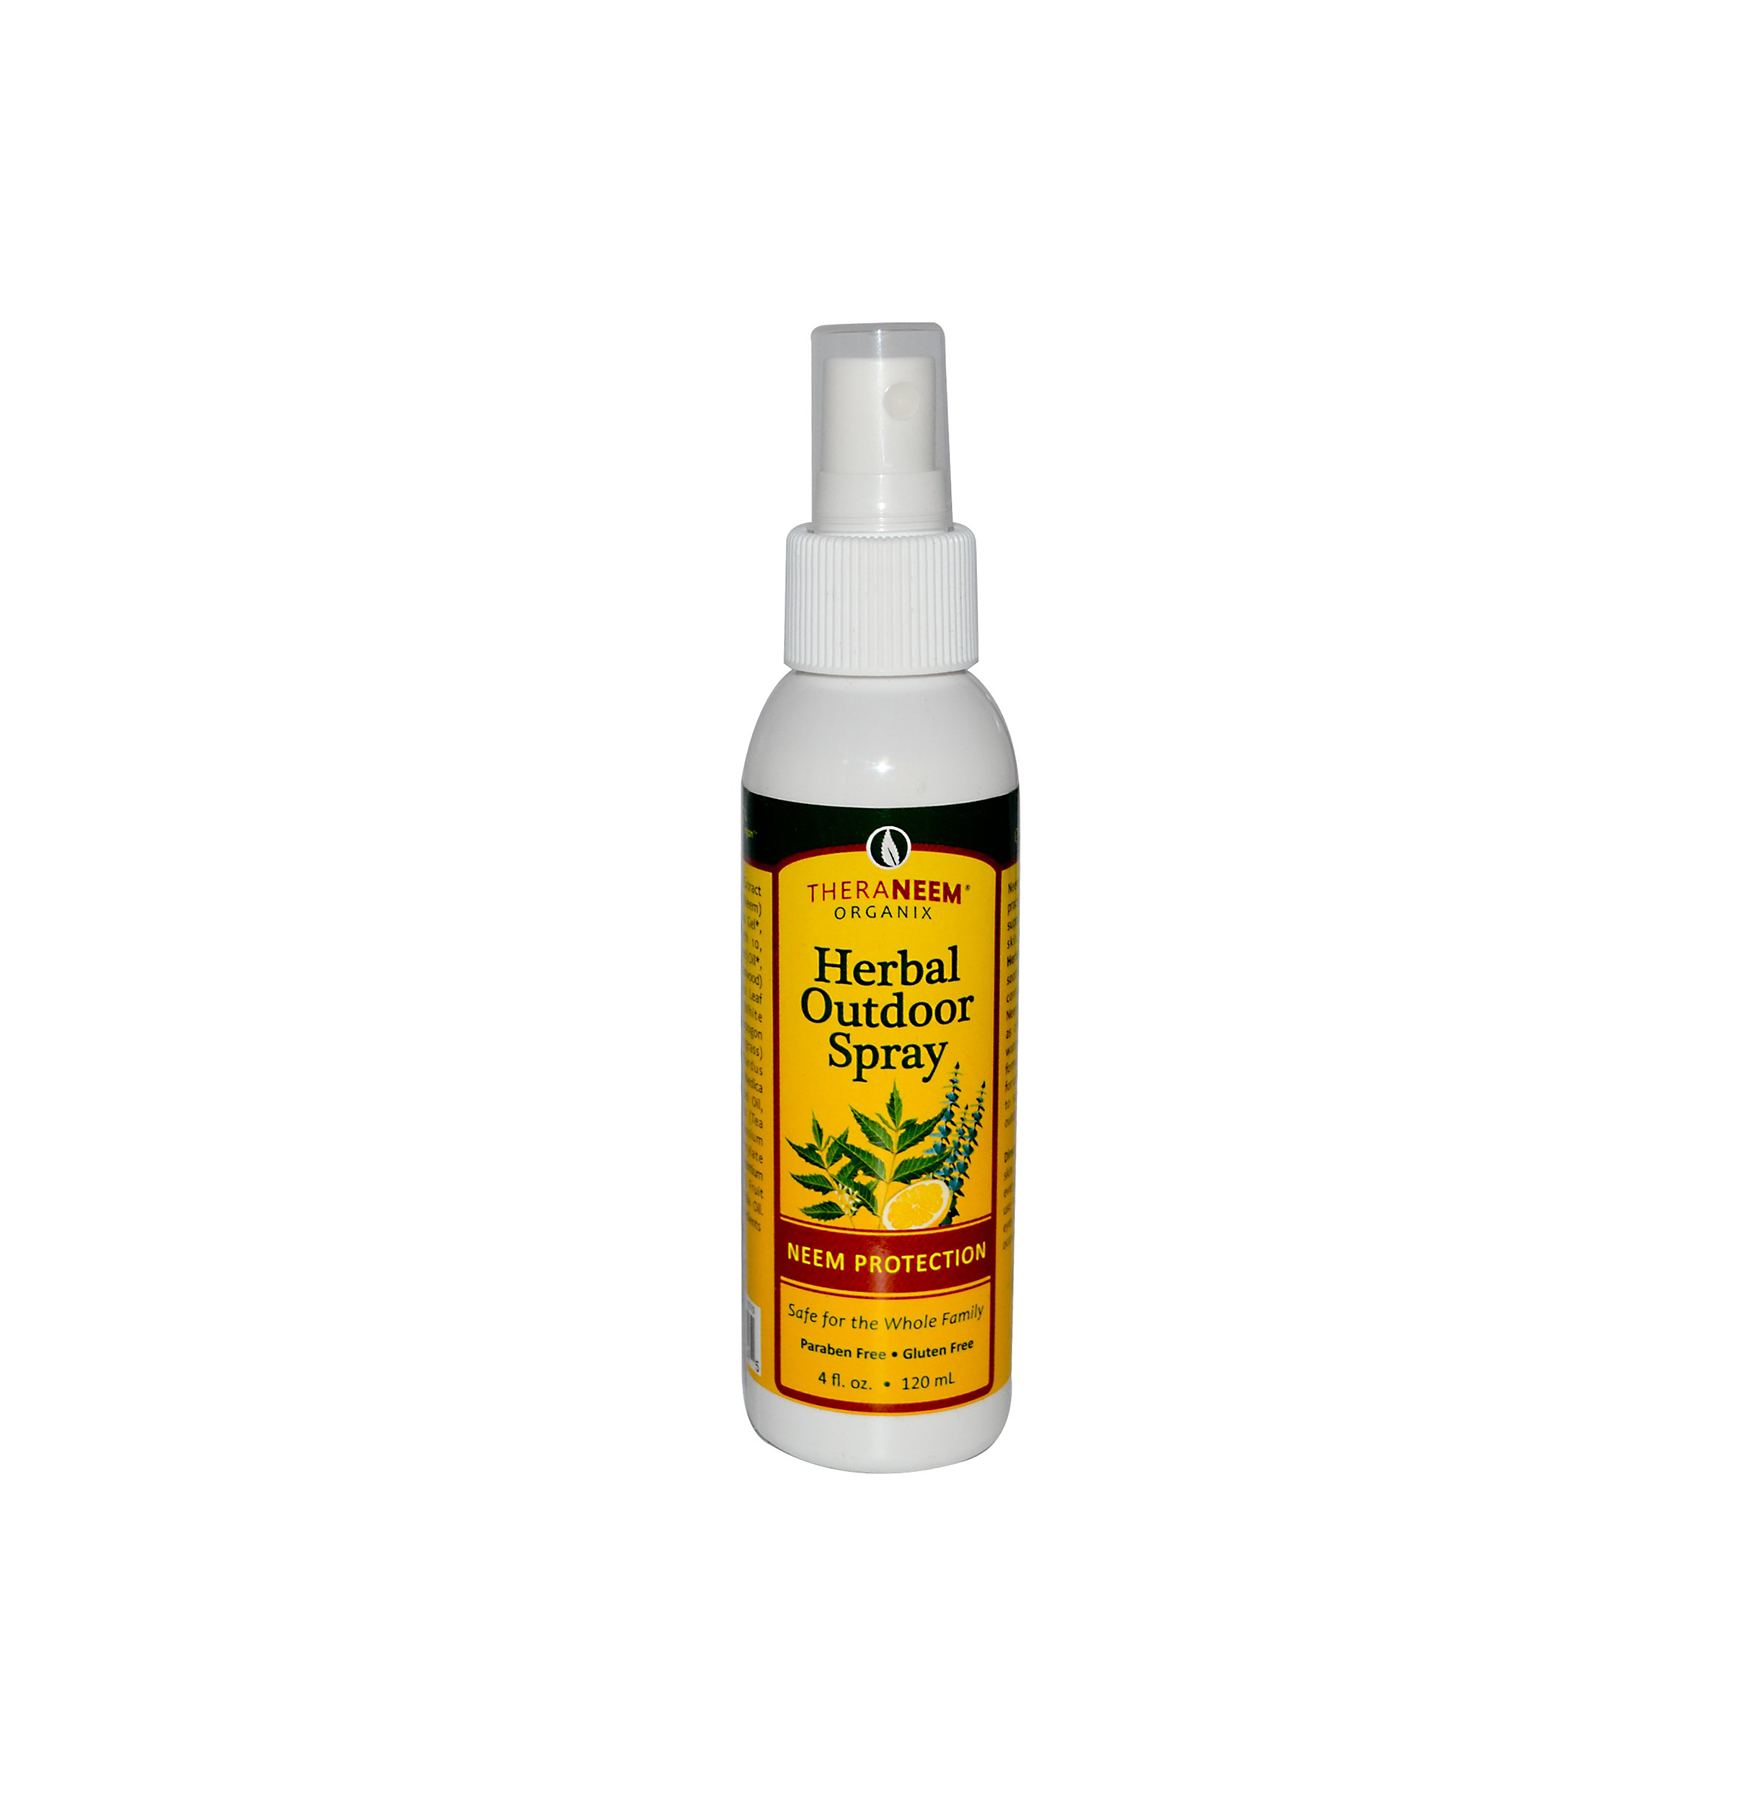 TheraNeem Herbal Outdoor Spray by Organix South